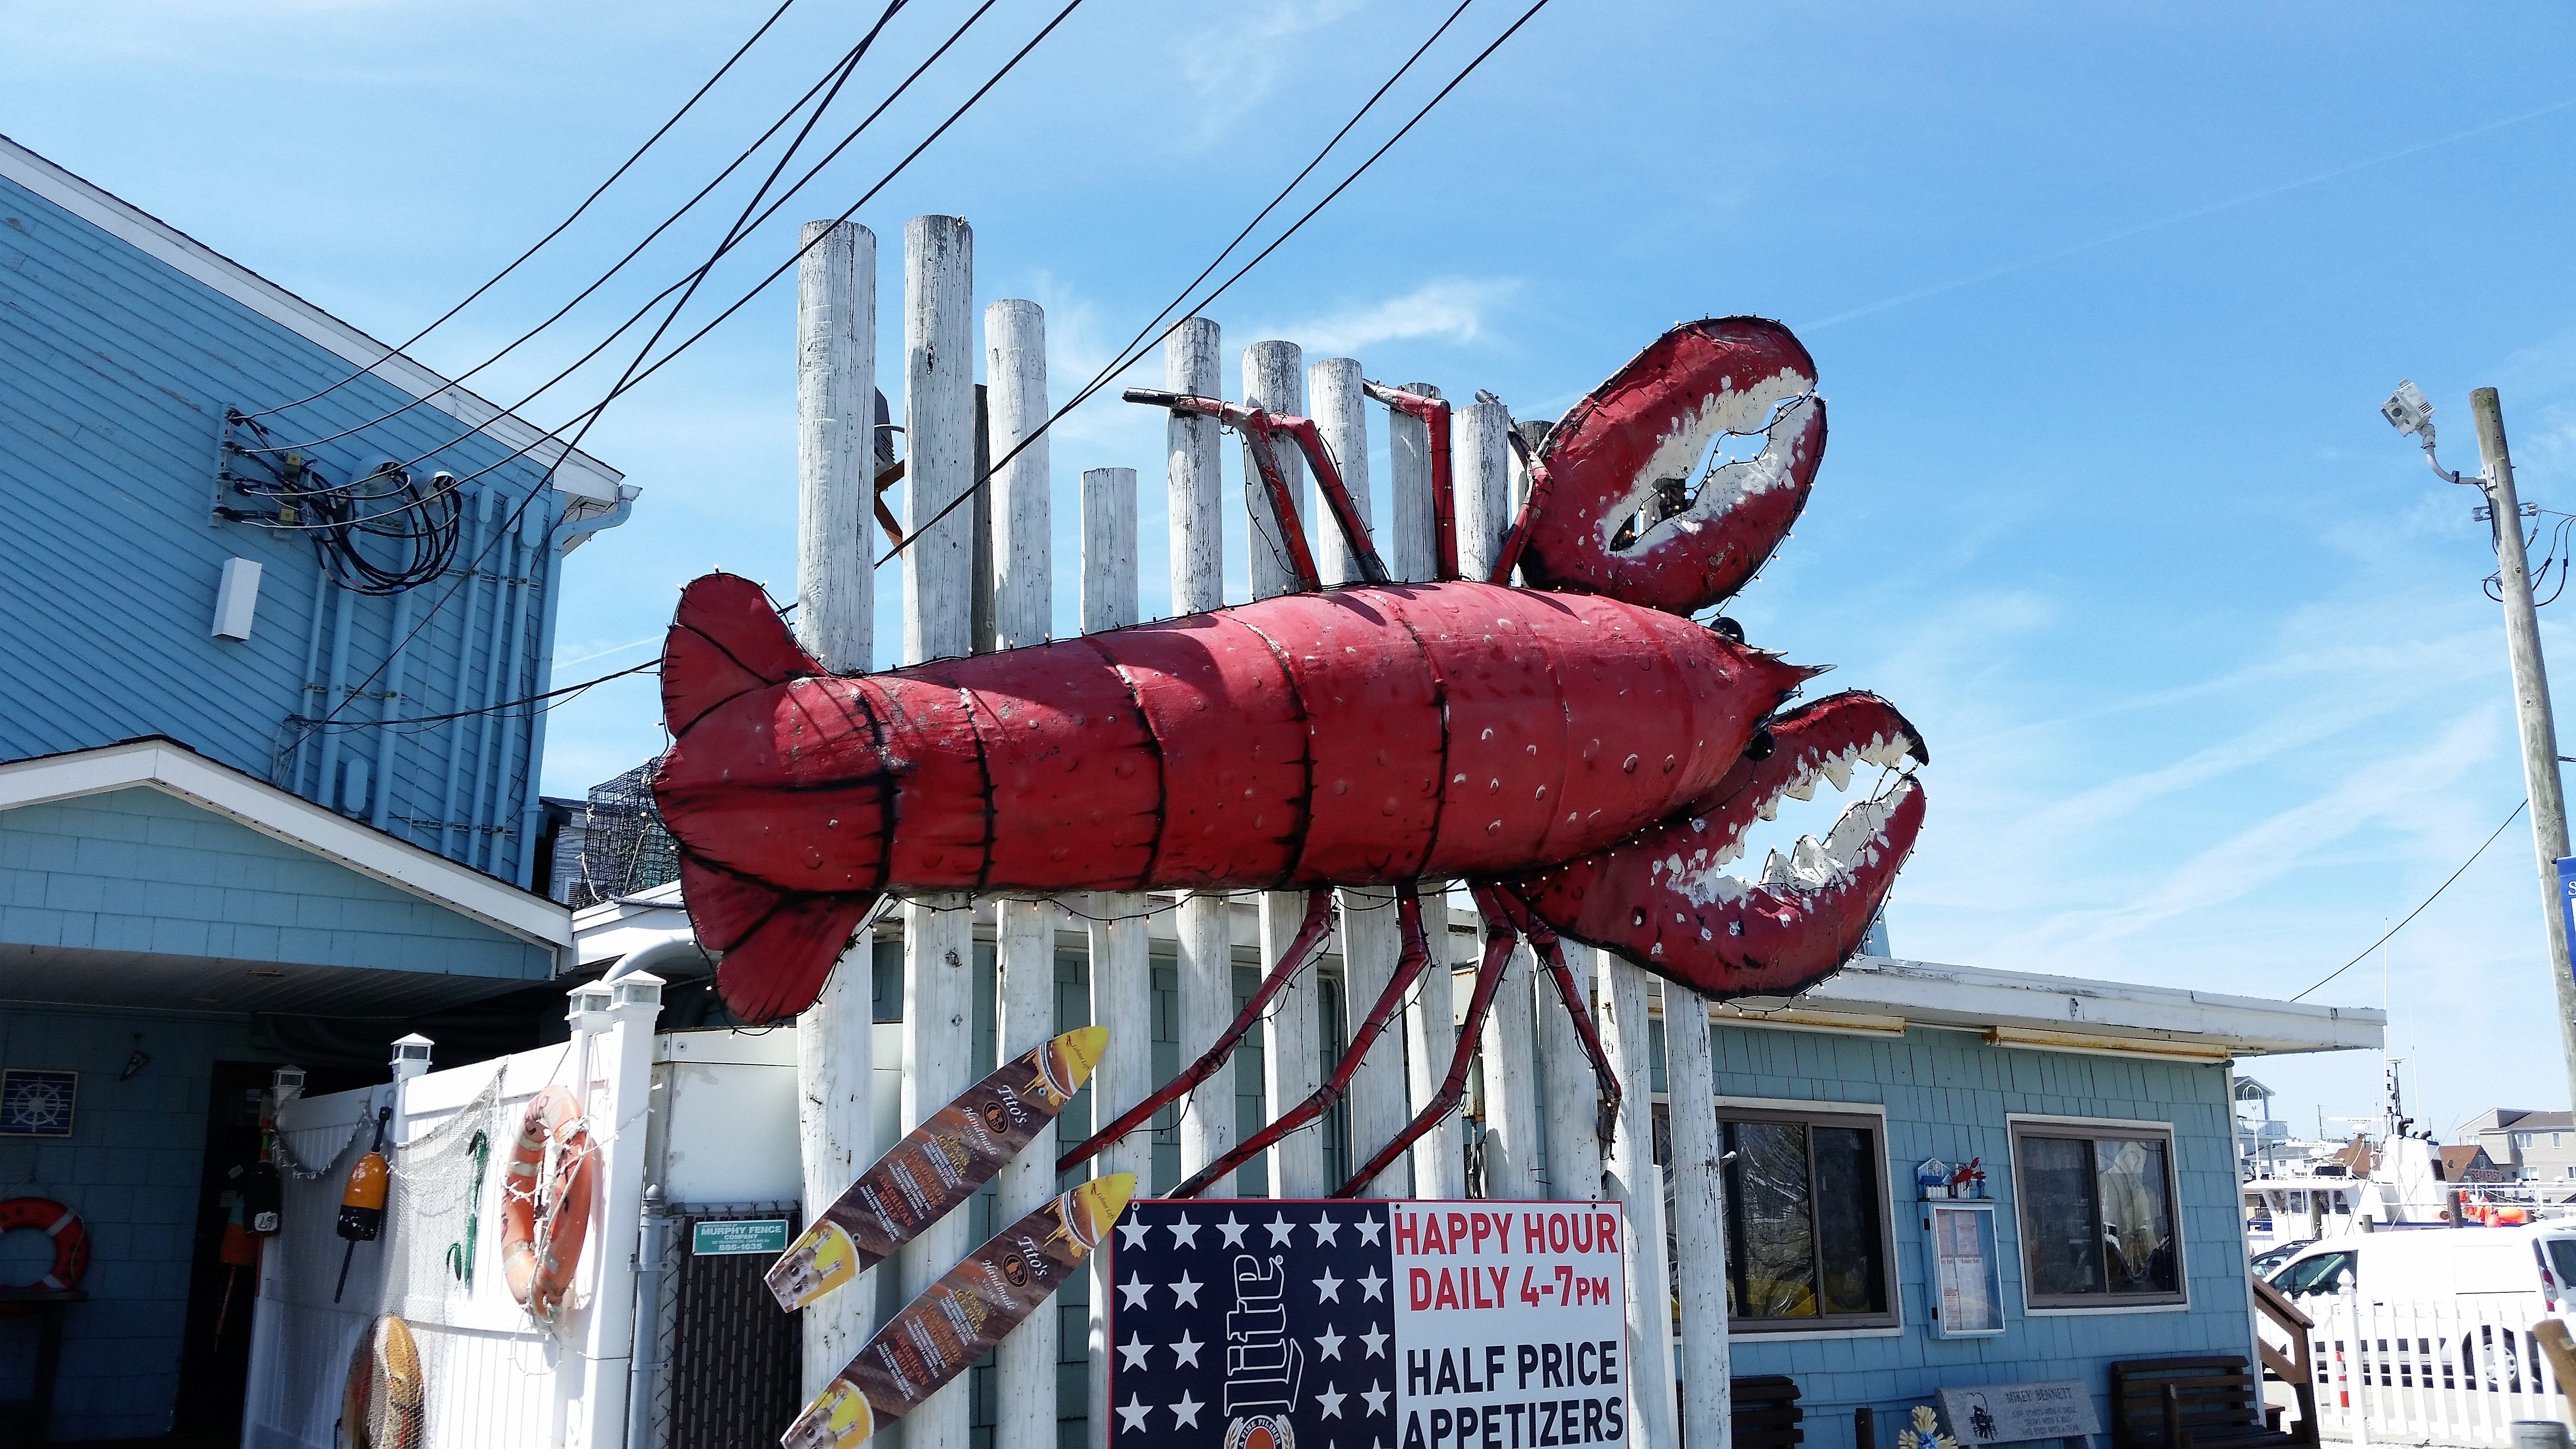 giant landmark lobster to be auctioned off in sea isle | sea isle news